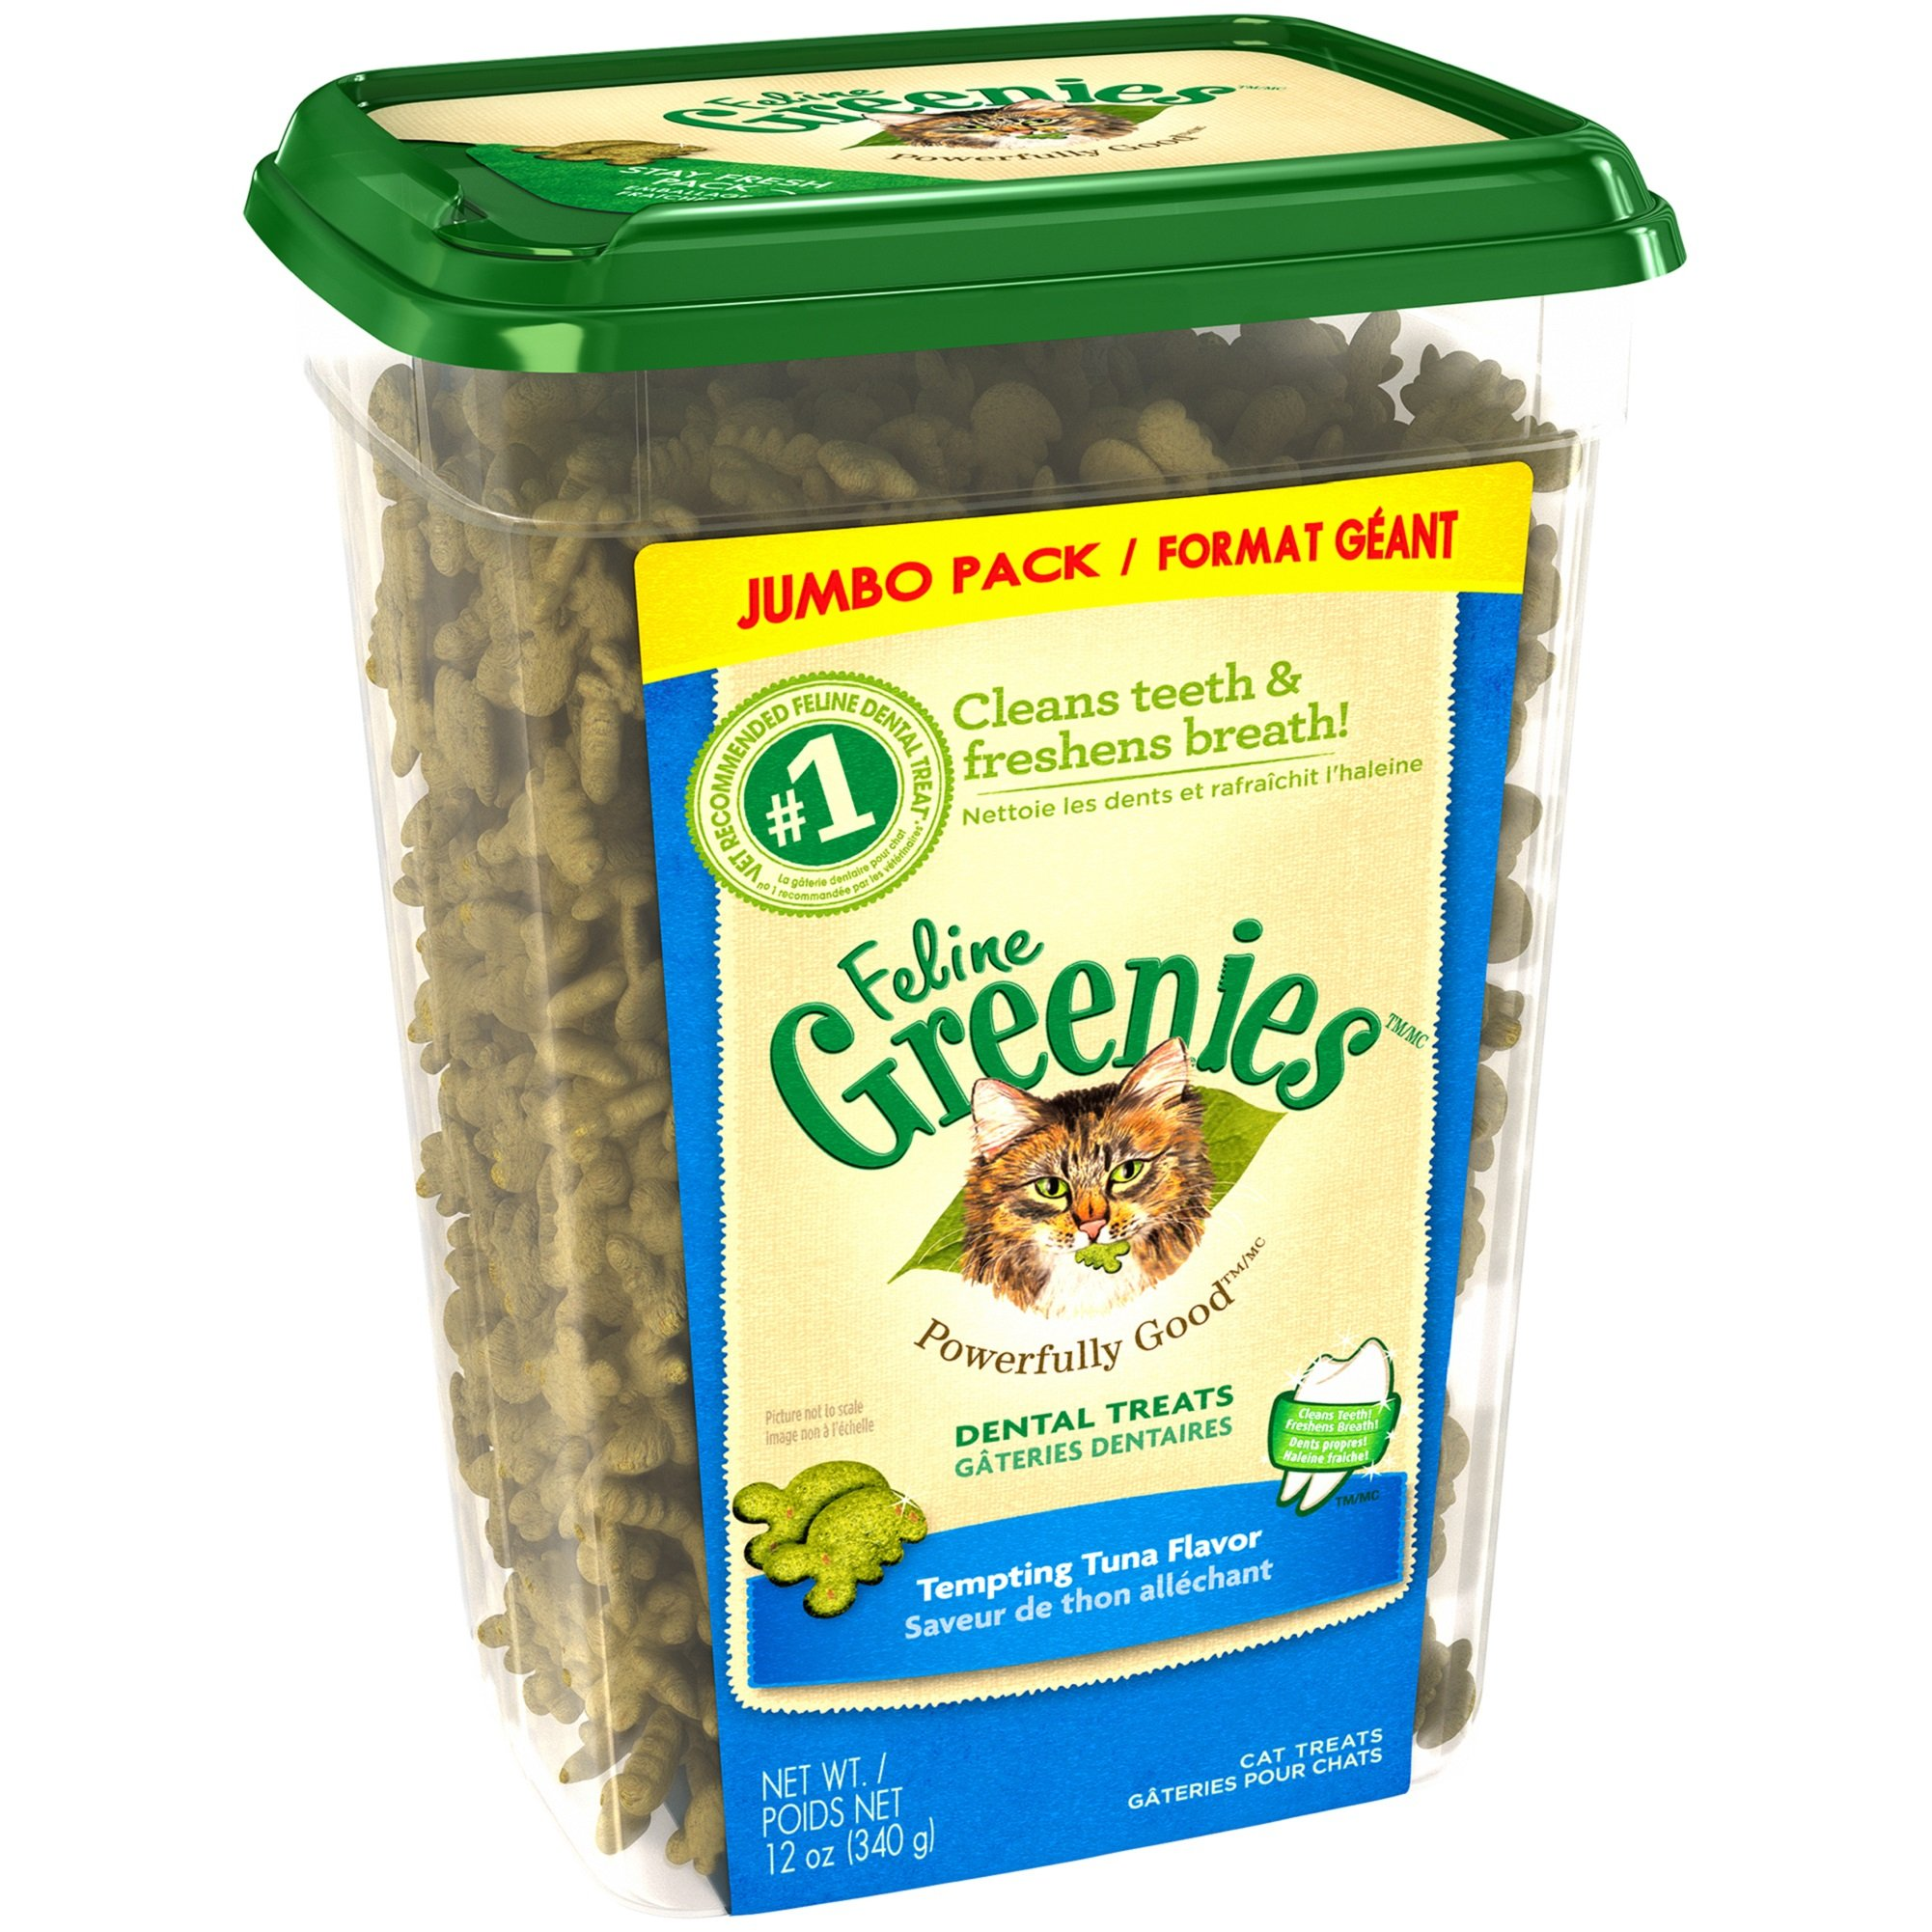 Greenies FELINE Dental Treats For Cats Tempting Tuna Flavor 12 oz. With Natural Ingredients Plus Vitamins, Minerals, And Other Nutrients